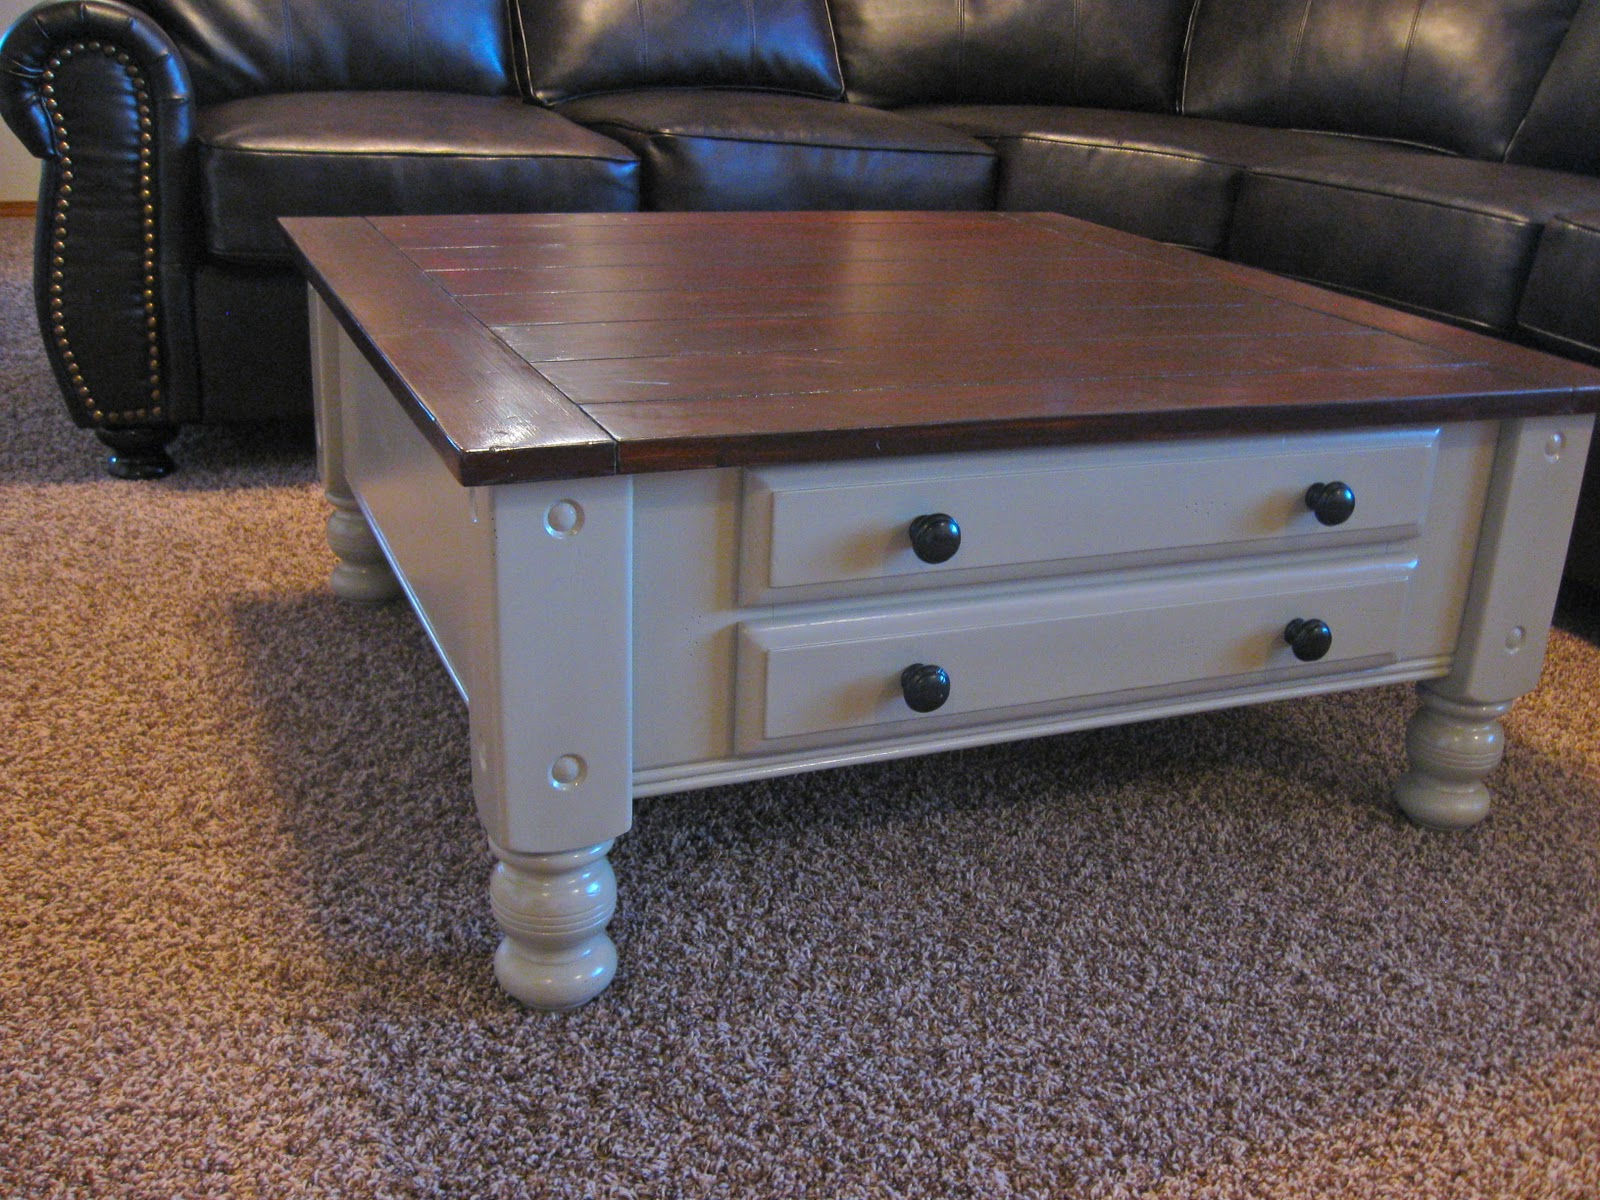 Improving on one39s life coffee table refinished for Refinishing a coffee table ideas